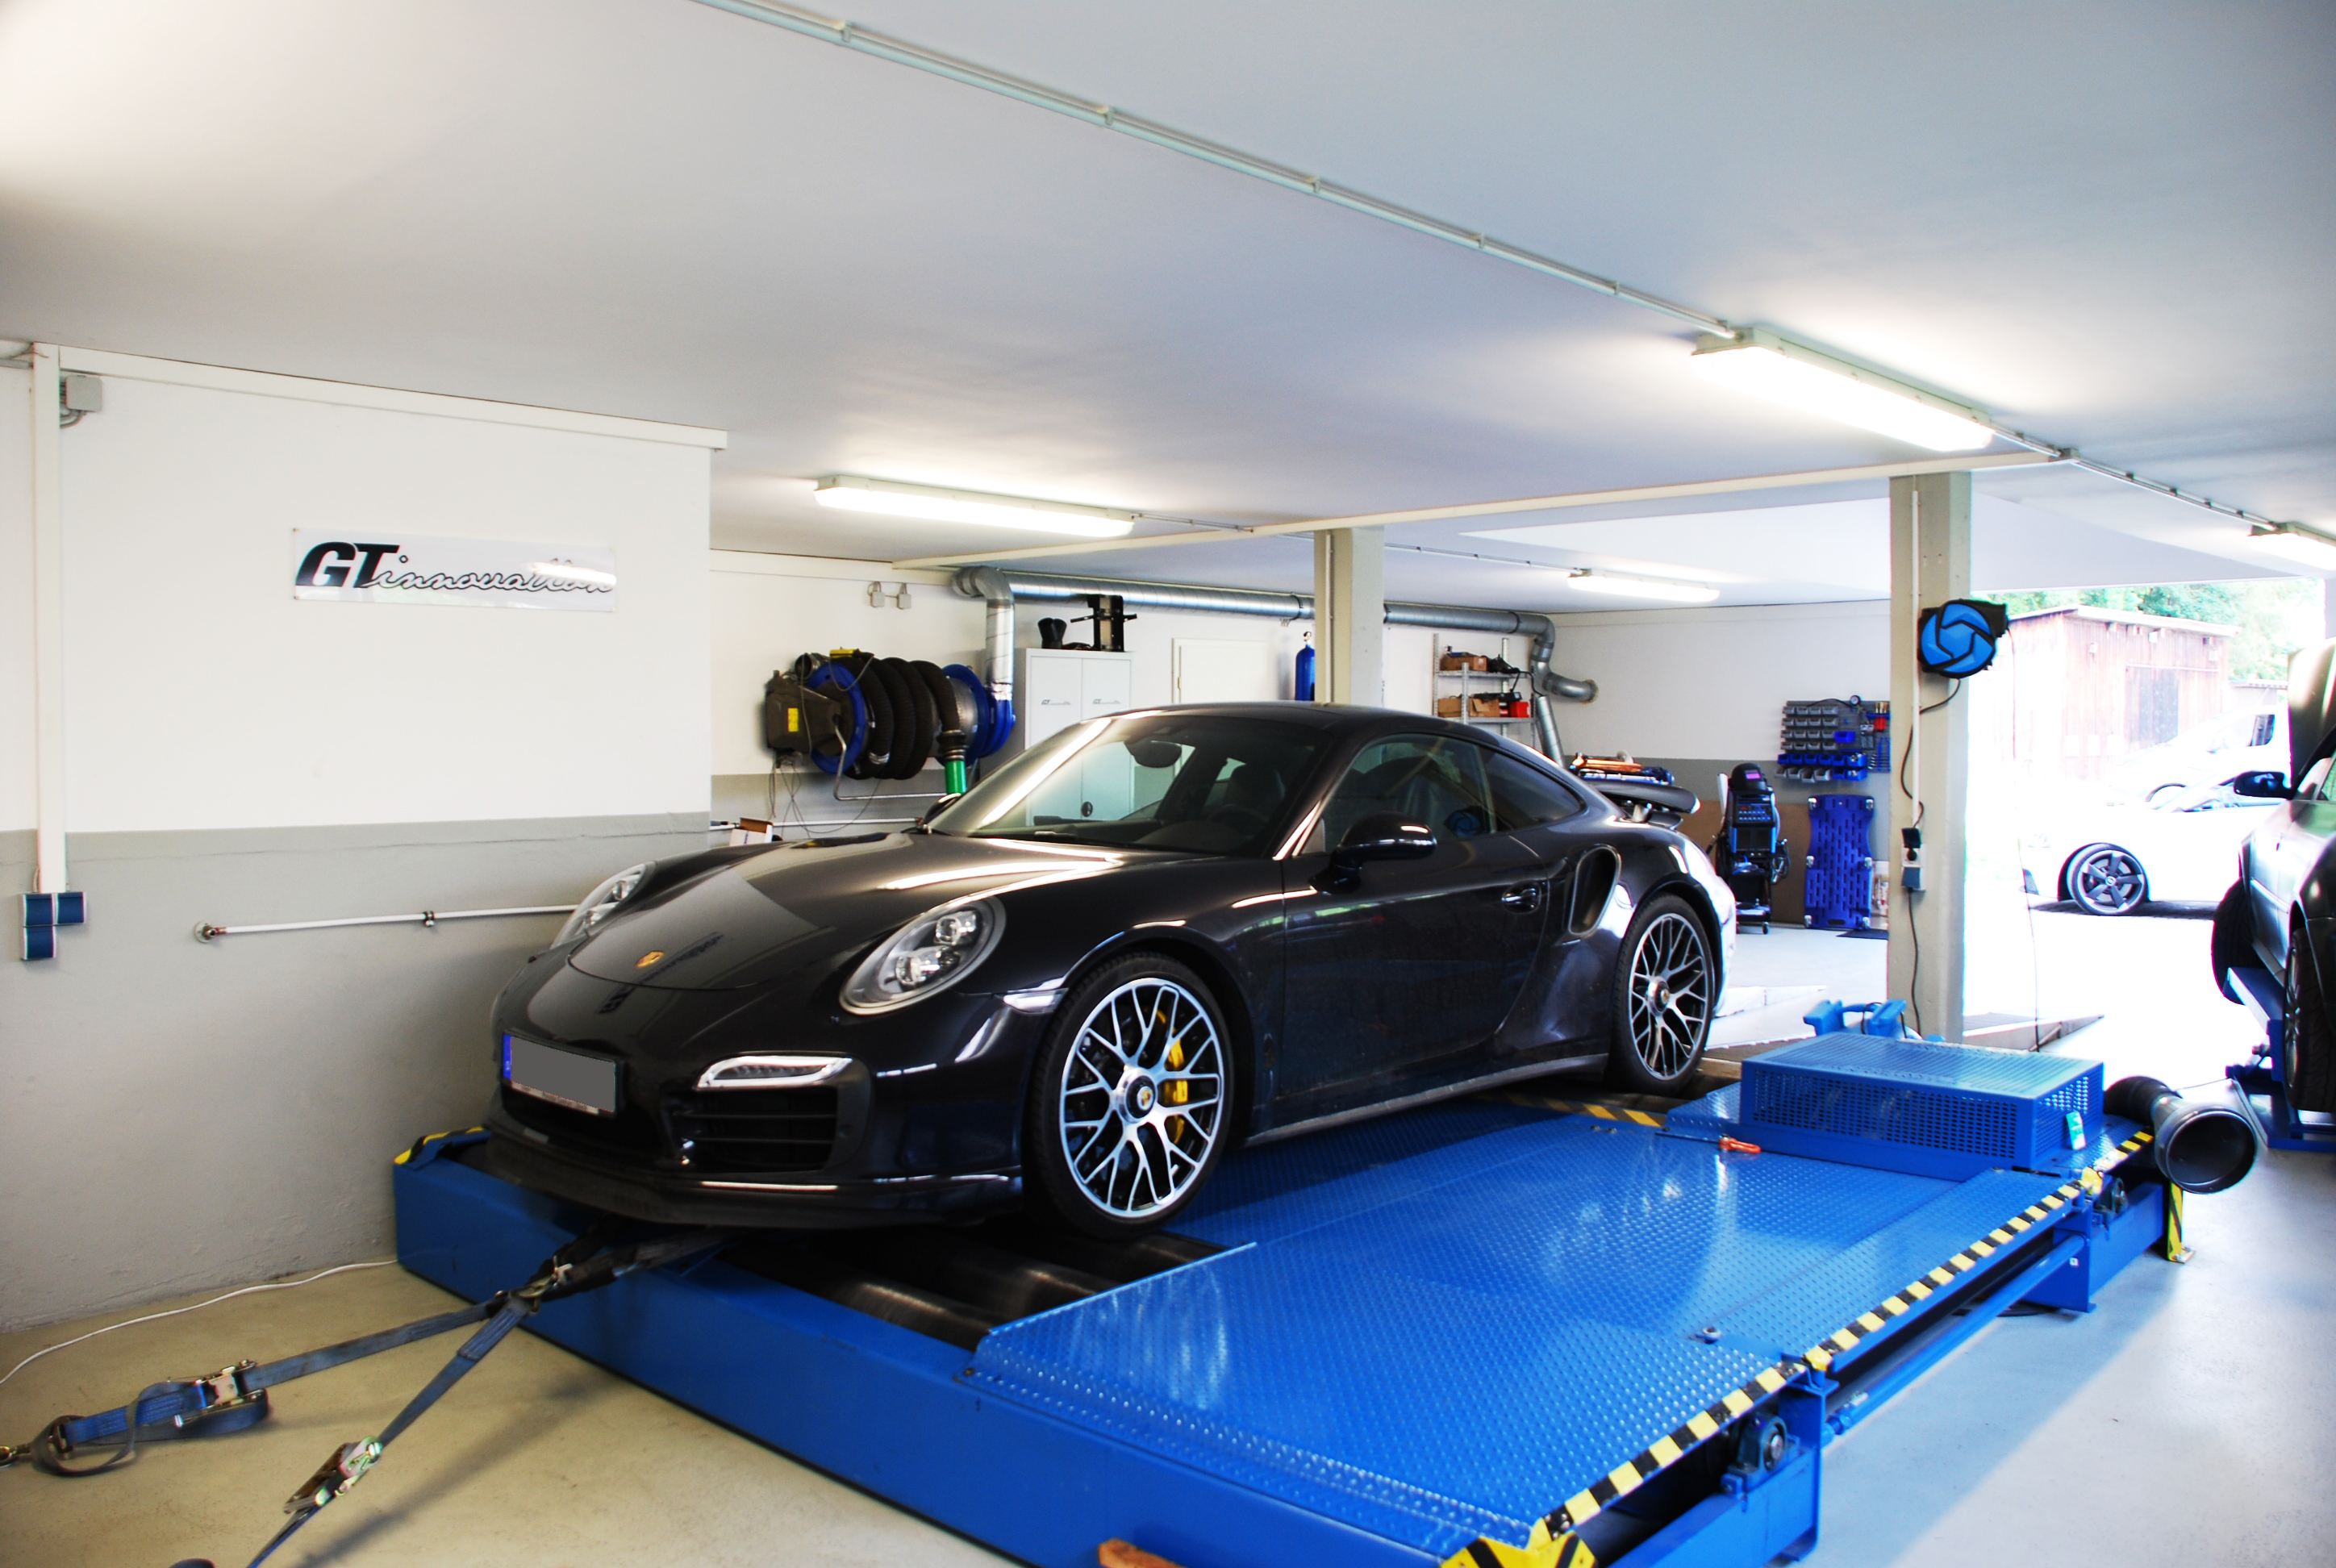 Porsche 991 Turbo S PDK 635Ps — GT-innovation